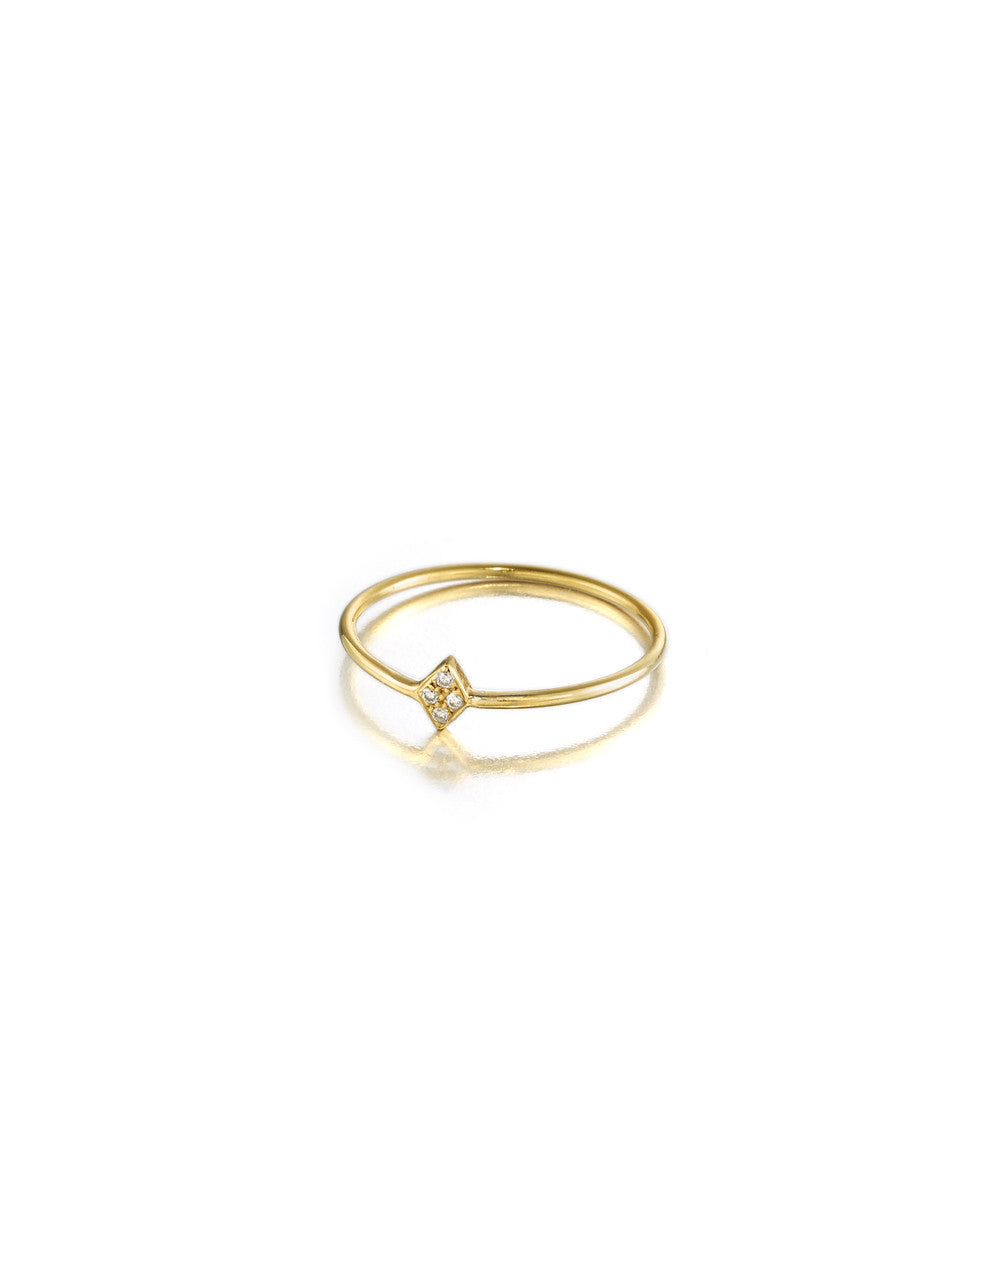 Diamond Shaped Diamond Ring, mini